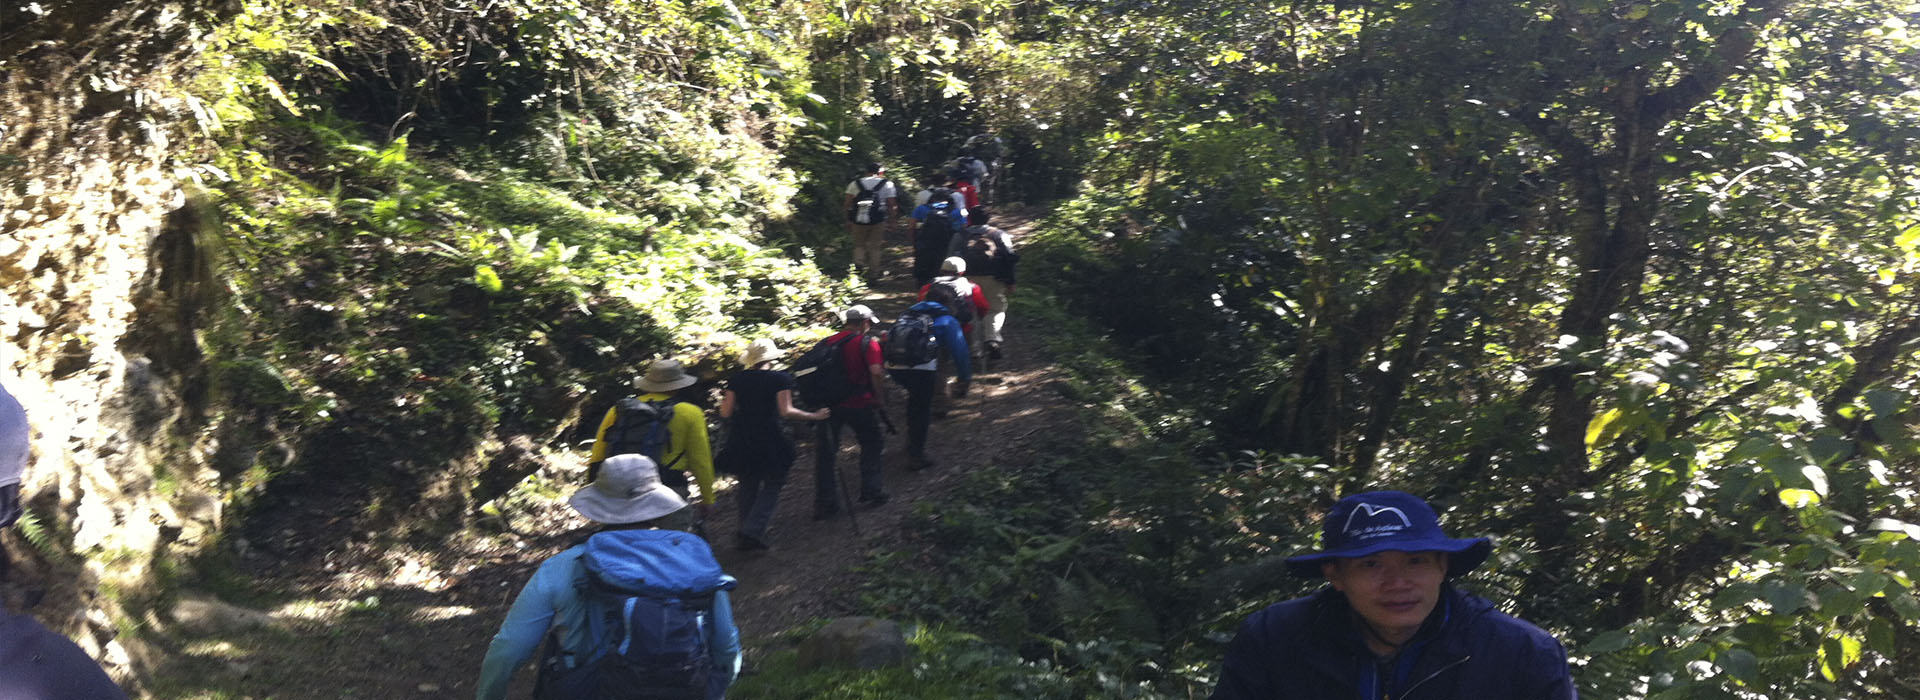 Salkantay Trek to Machu Picchu 5 days return by bus last day